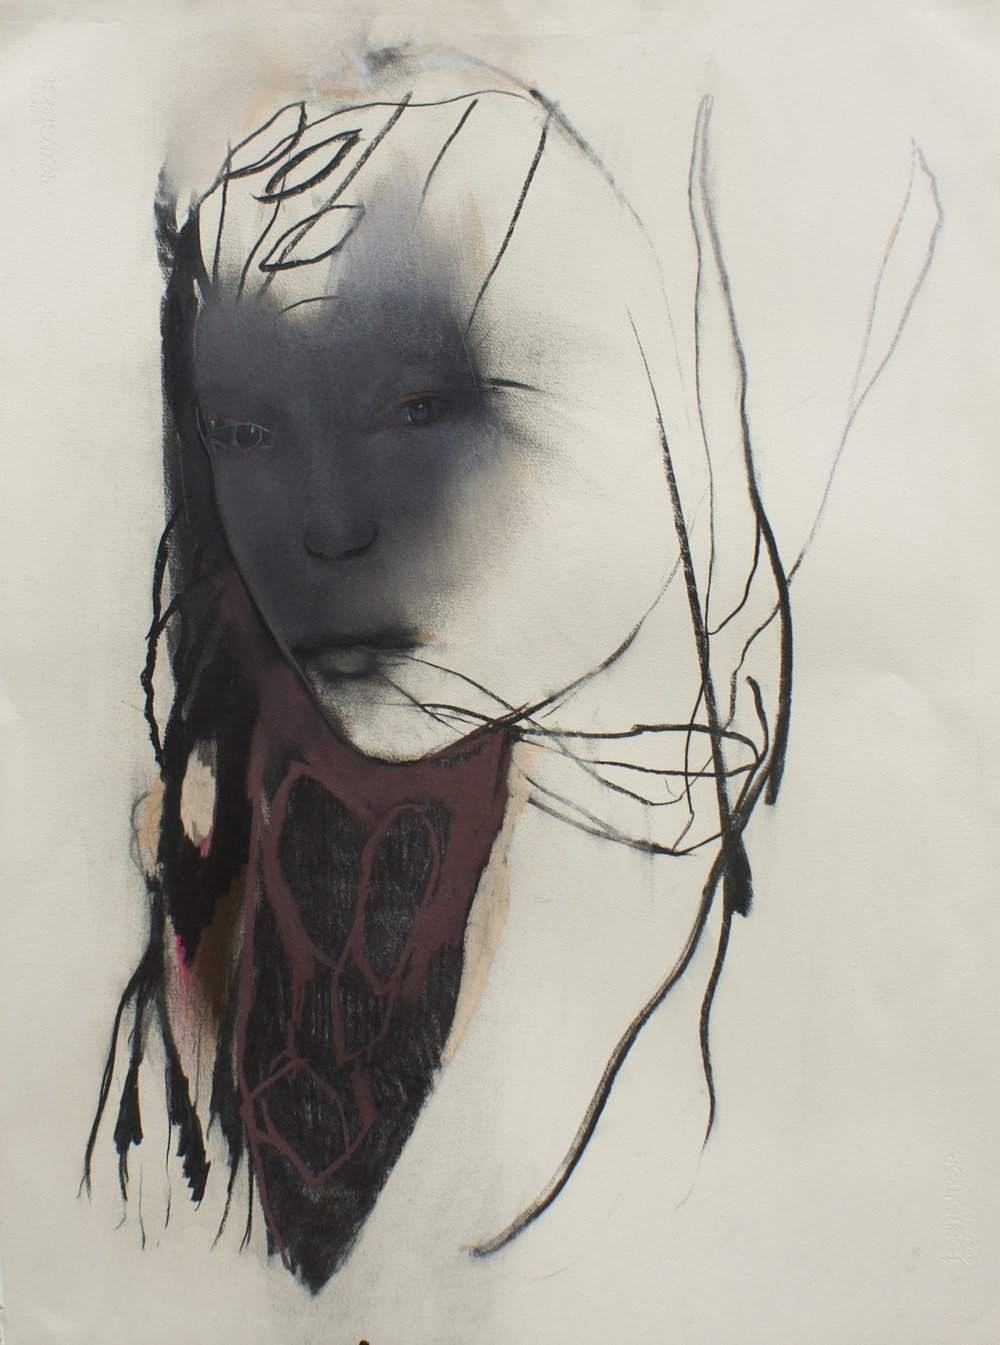 5. Sioux, 56 x 76 cm. Charcoal on paper